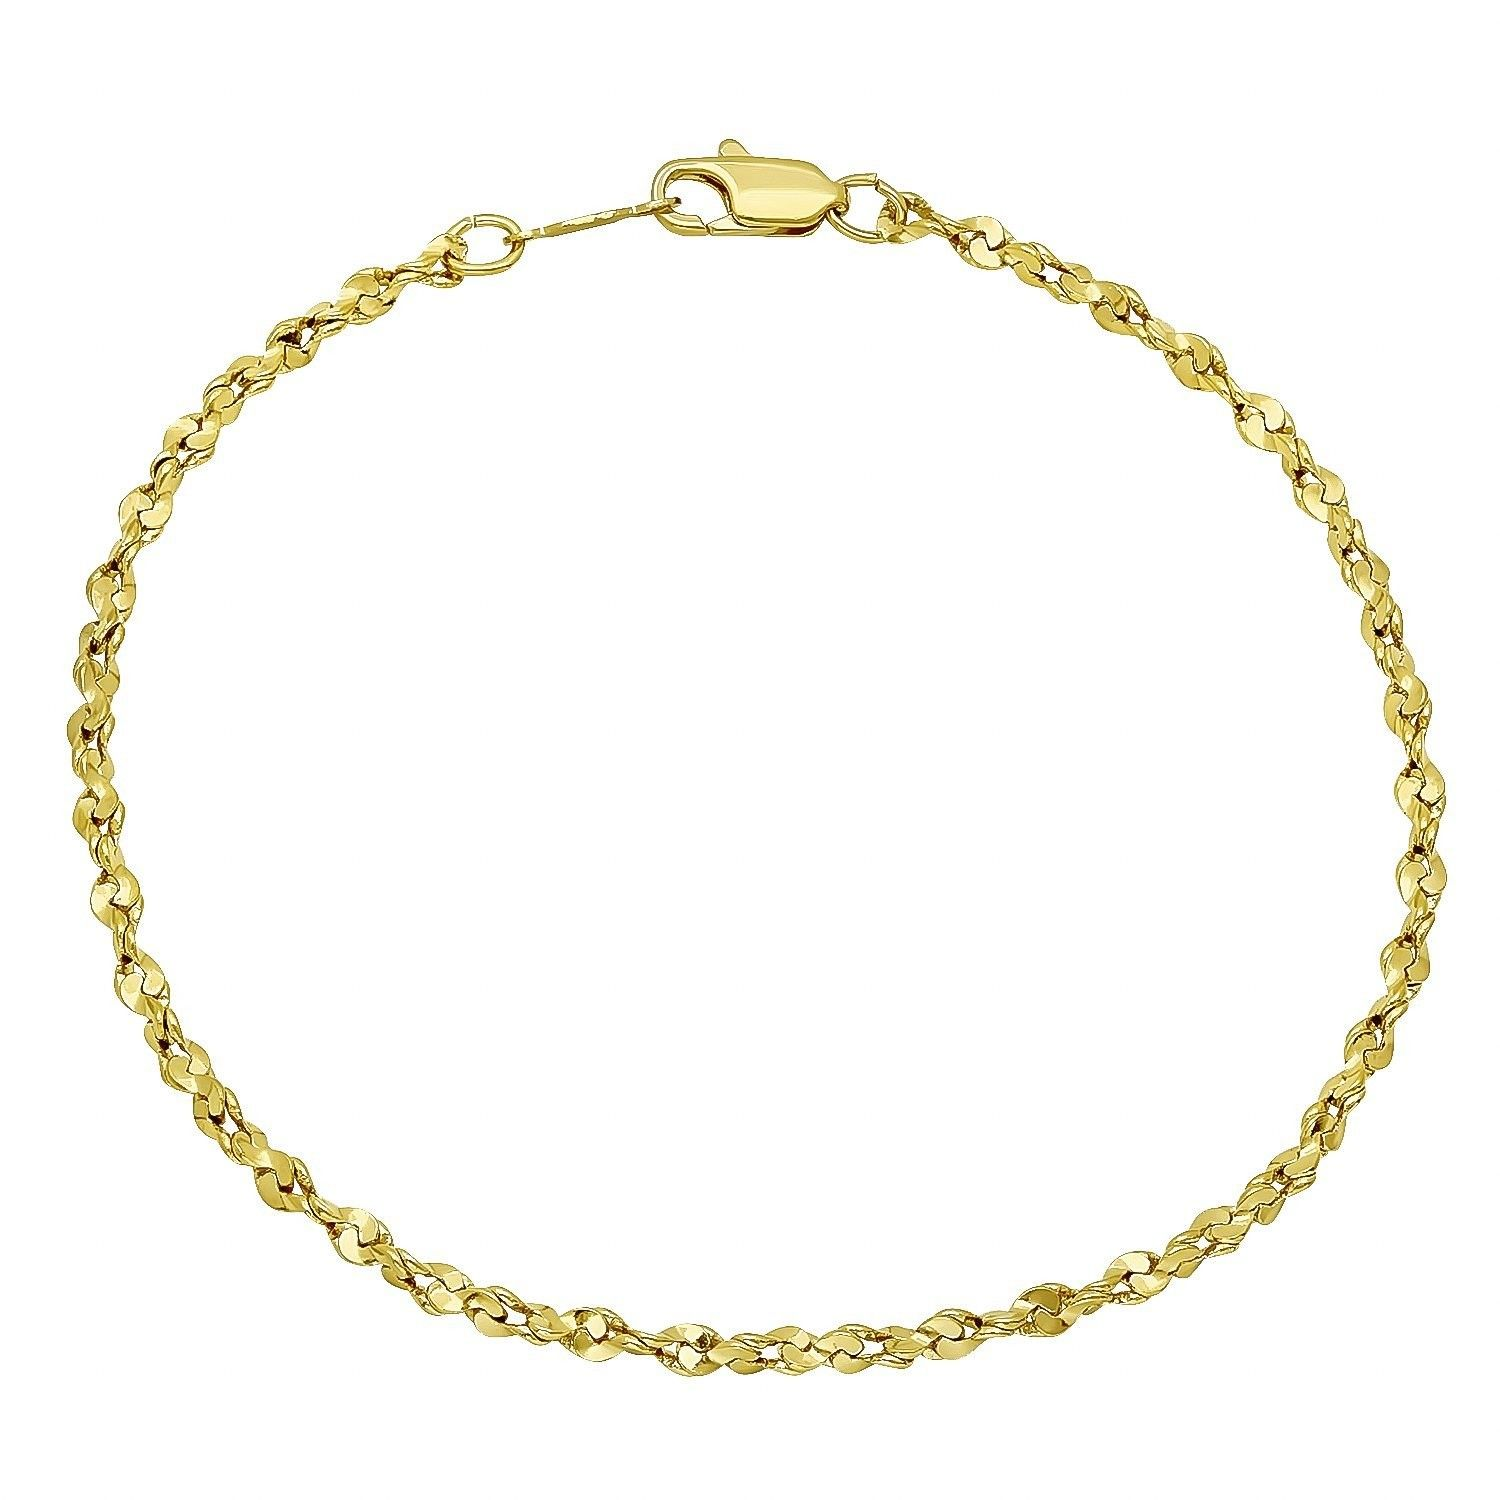 Thin 2.7mm 24k Gold Plated Twisted Singapore Link Chain